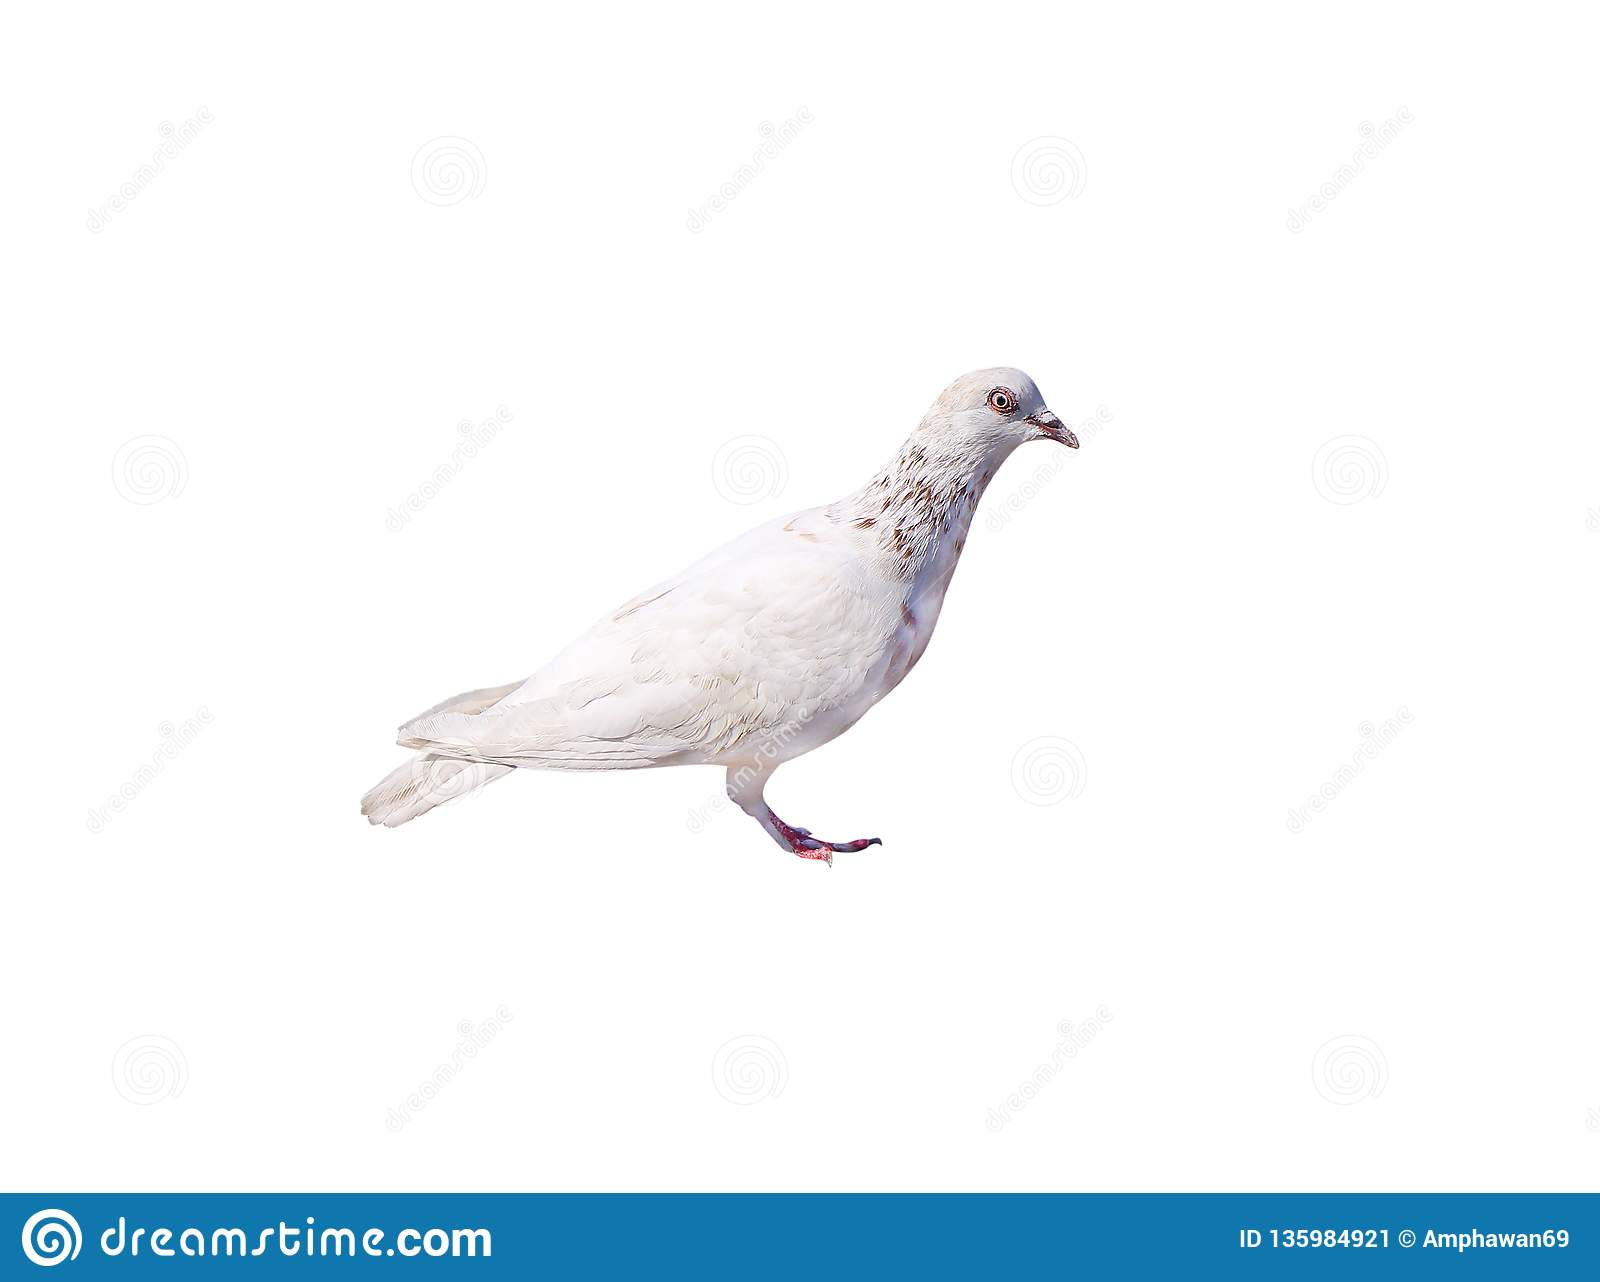 White pigeon with brown striped isolated on white background with clipping path